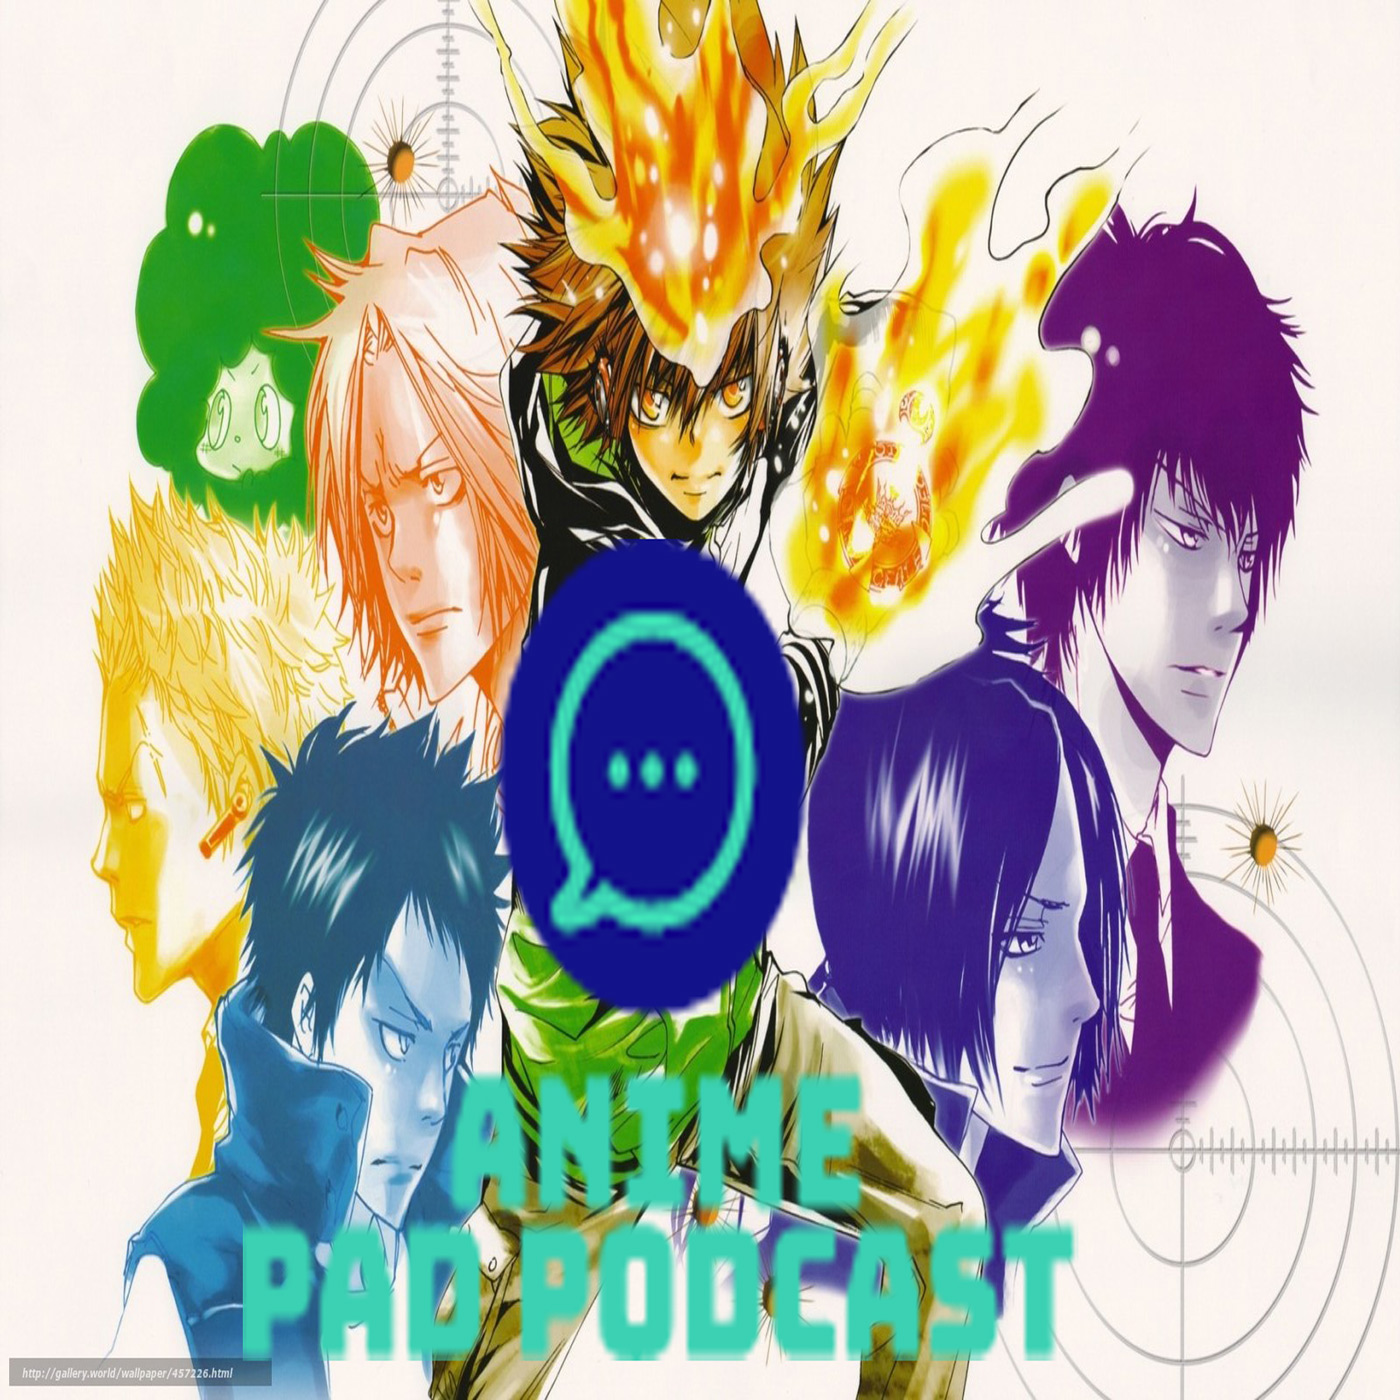 The Anime Pad Podcast